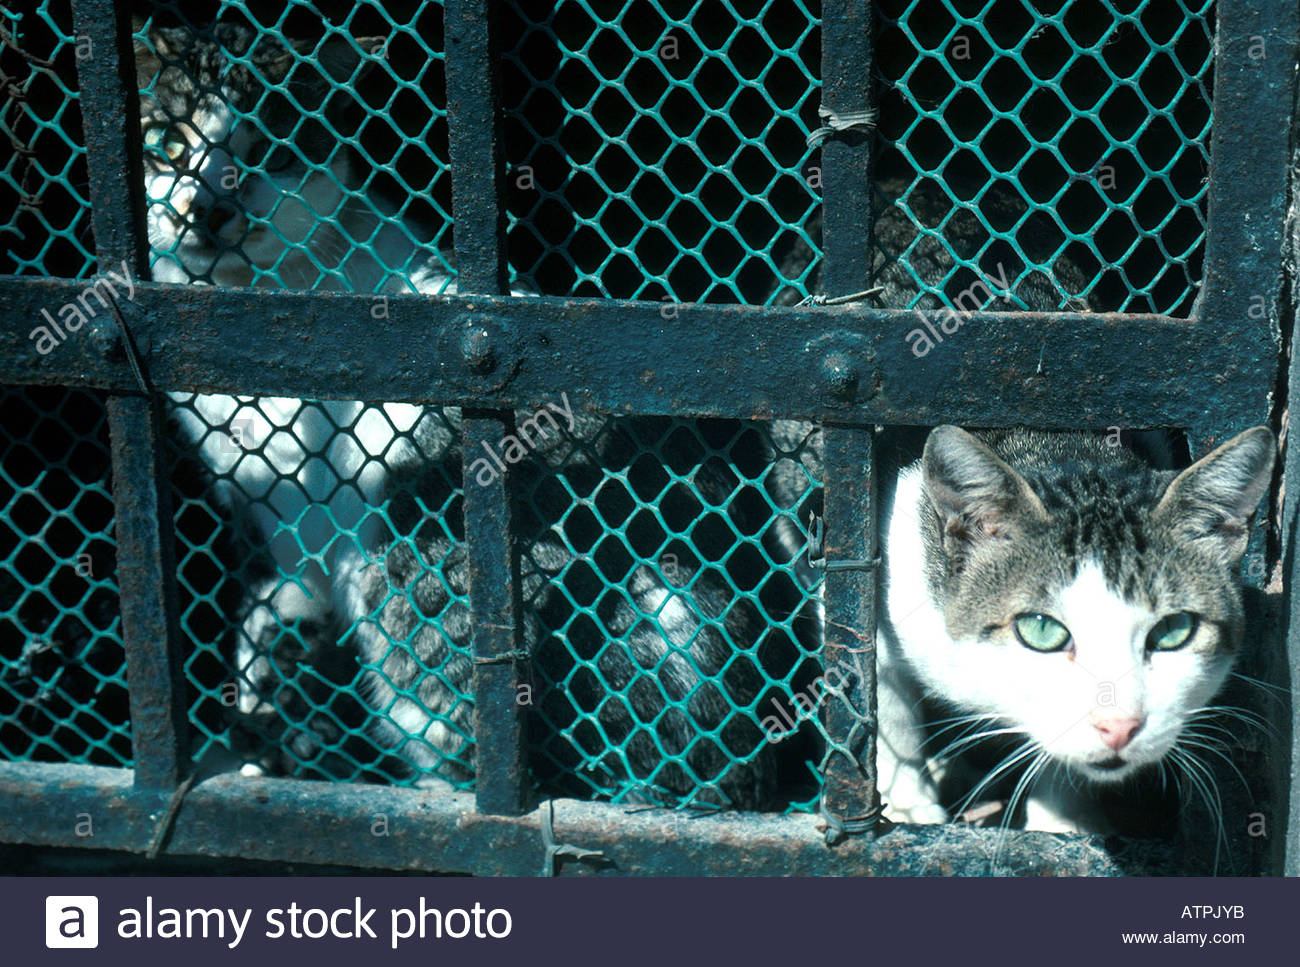 Cat Head in the Hole of Fence Stock Photo: 9354298 - Alamy